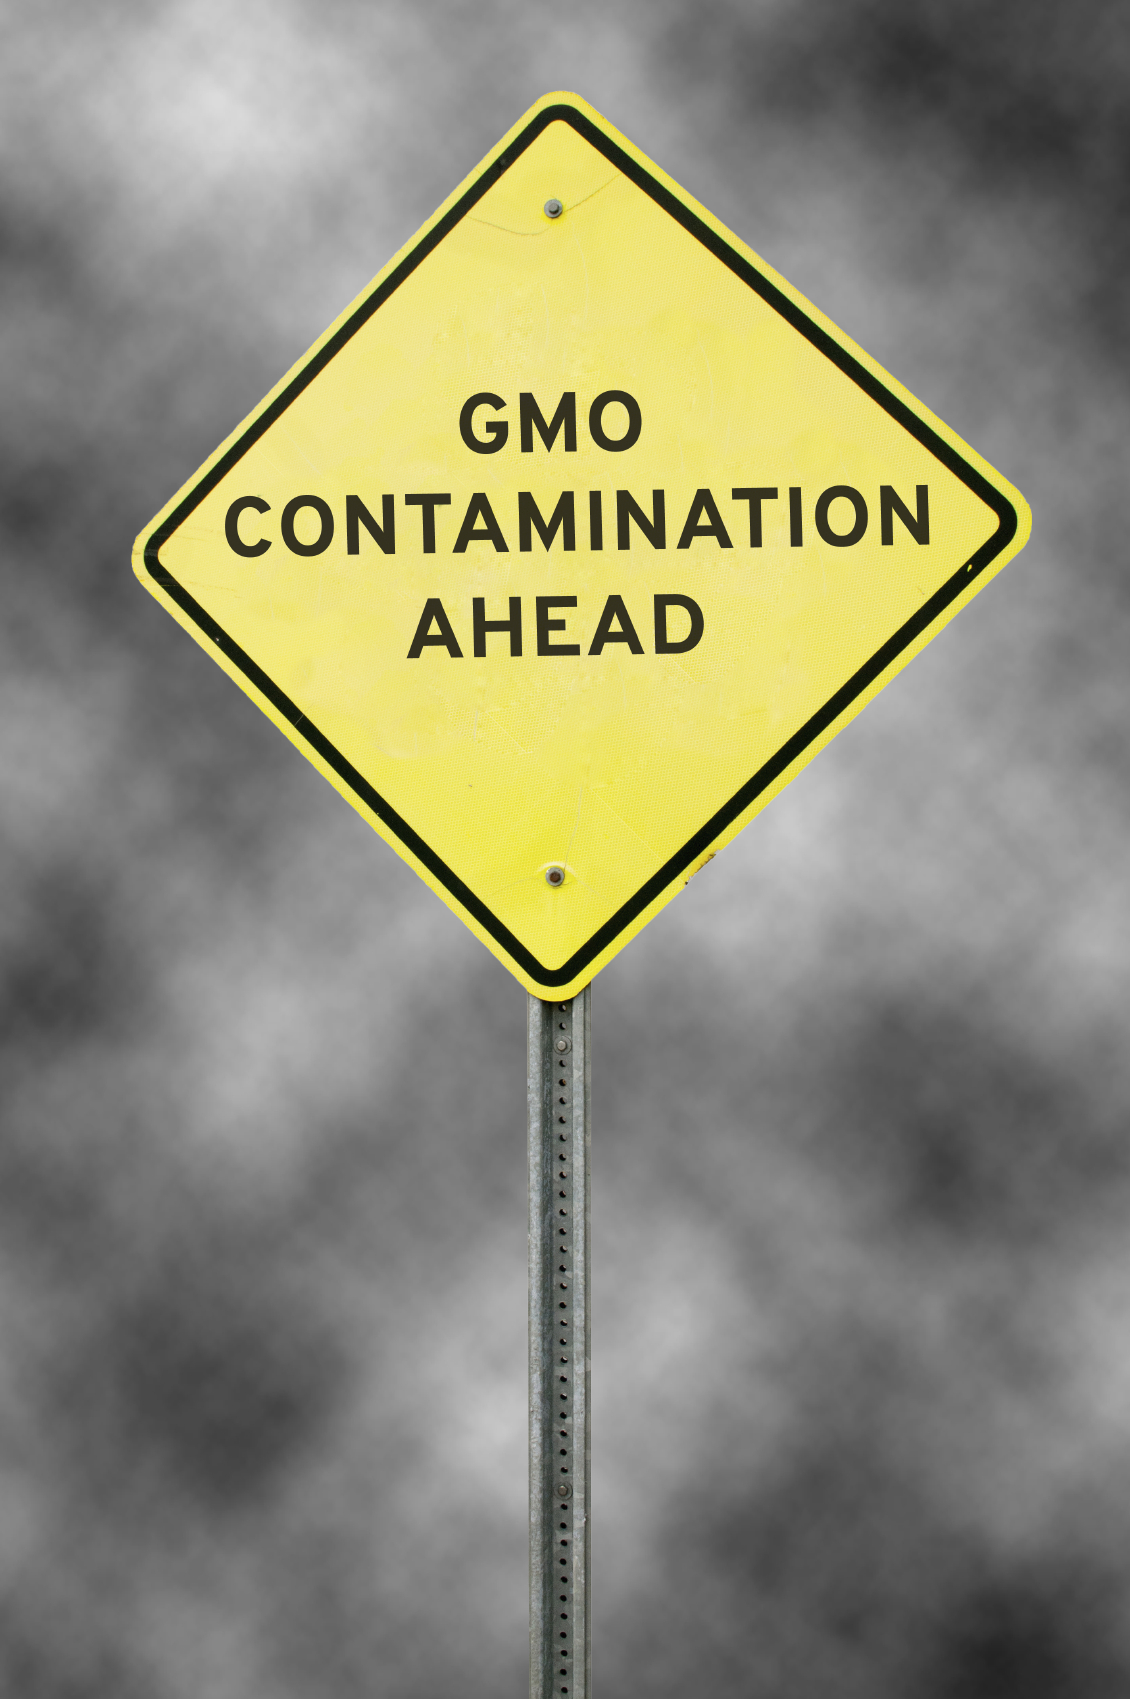 Roadsign warning that there is GMO contamination ahead